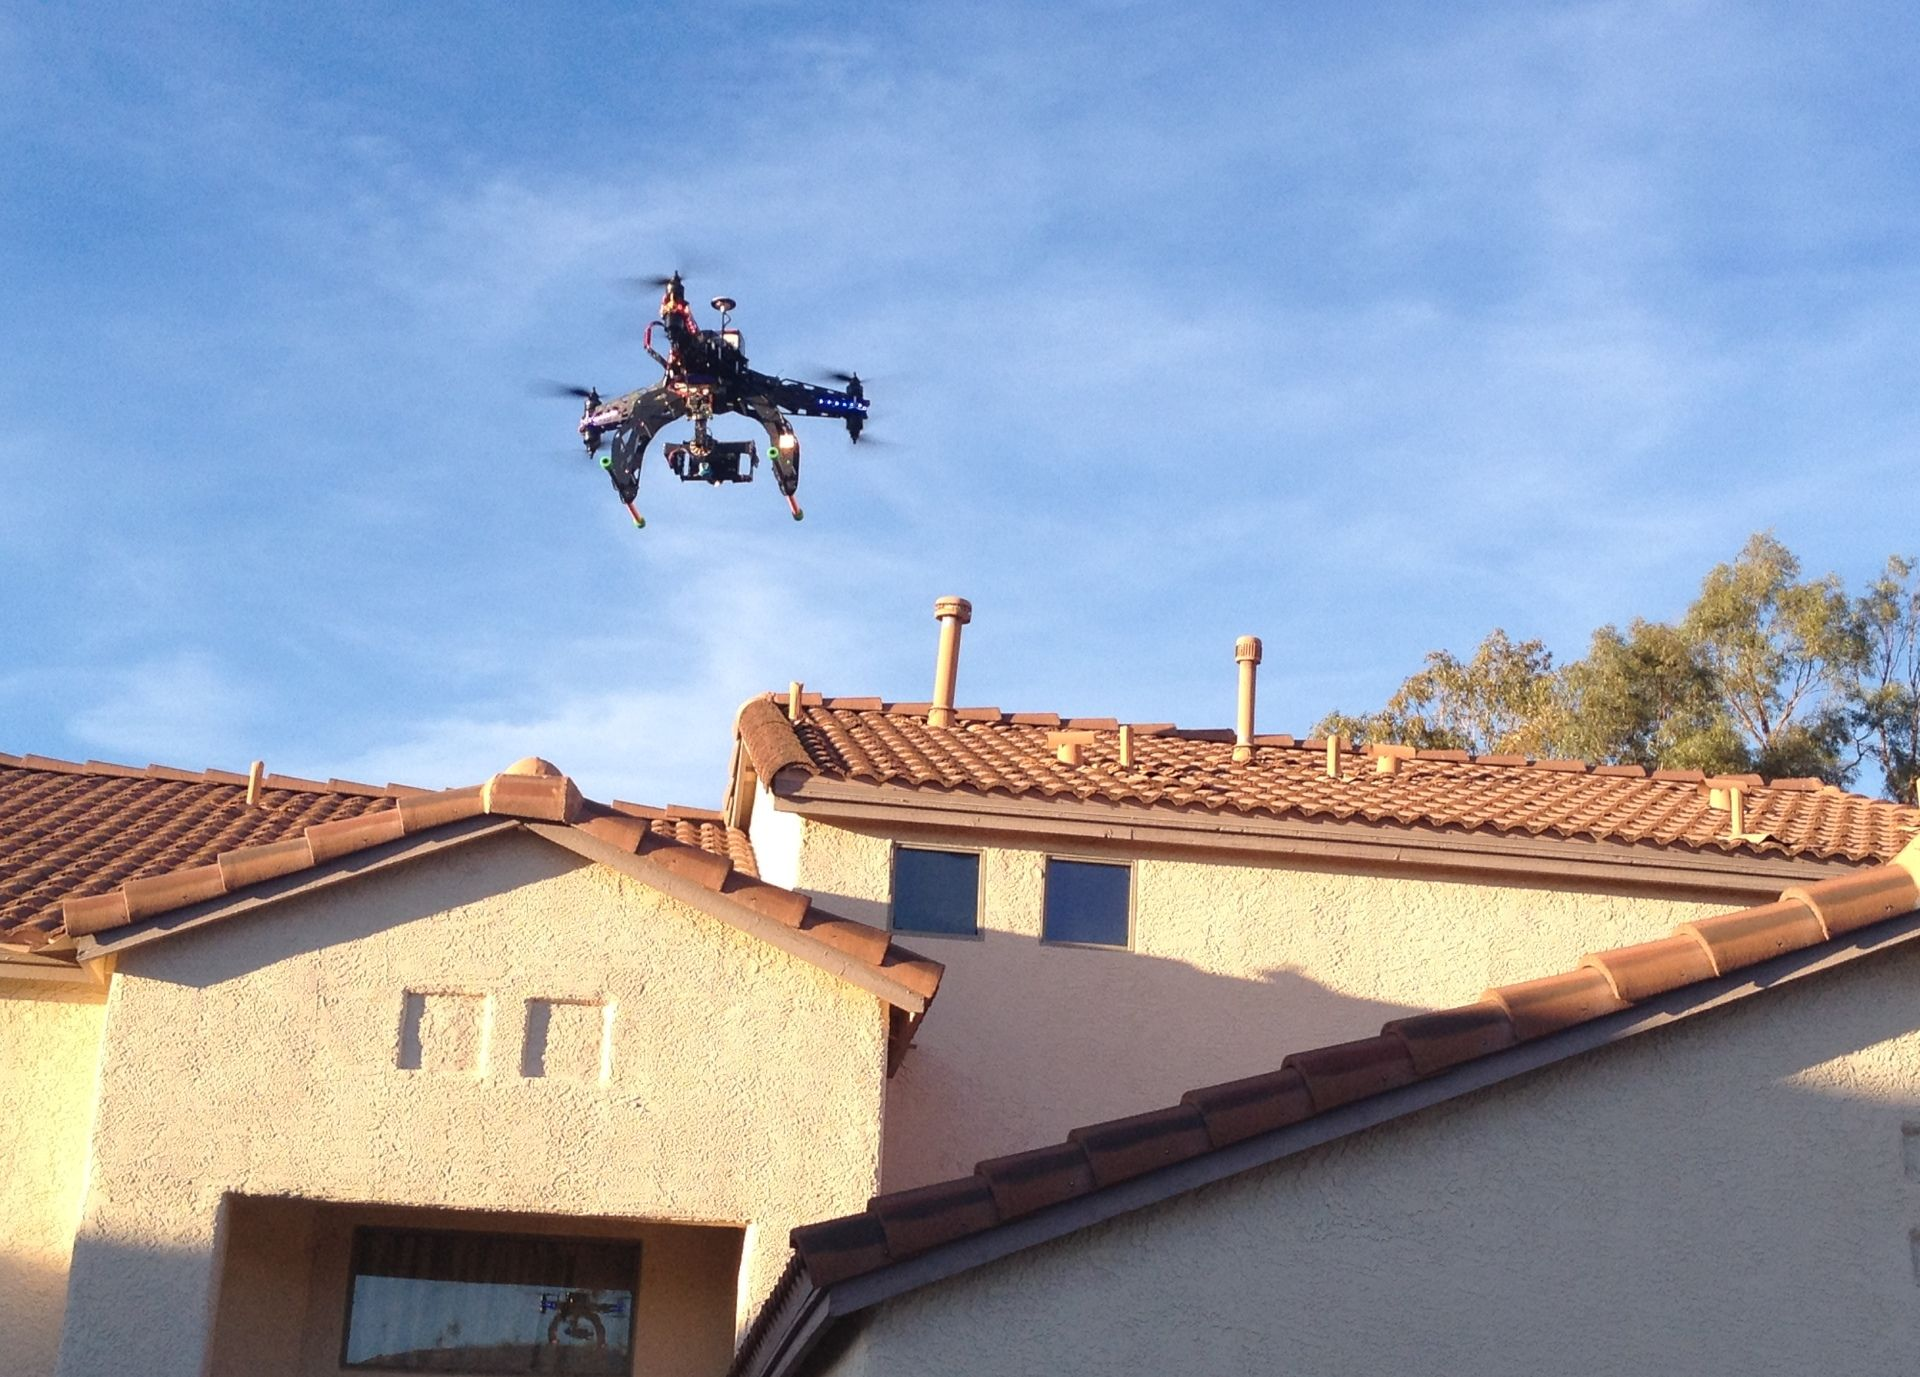 File photo of a unmanned aircraft, or drone, flying over a house.